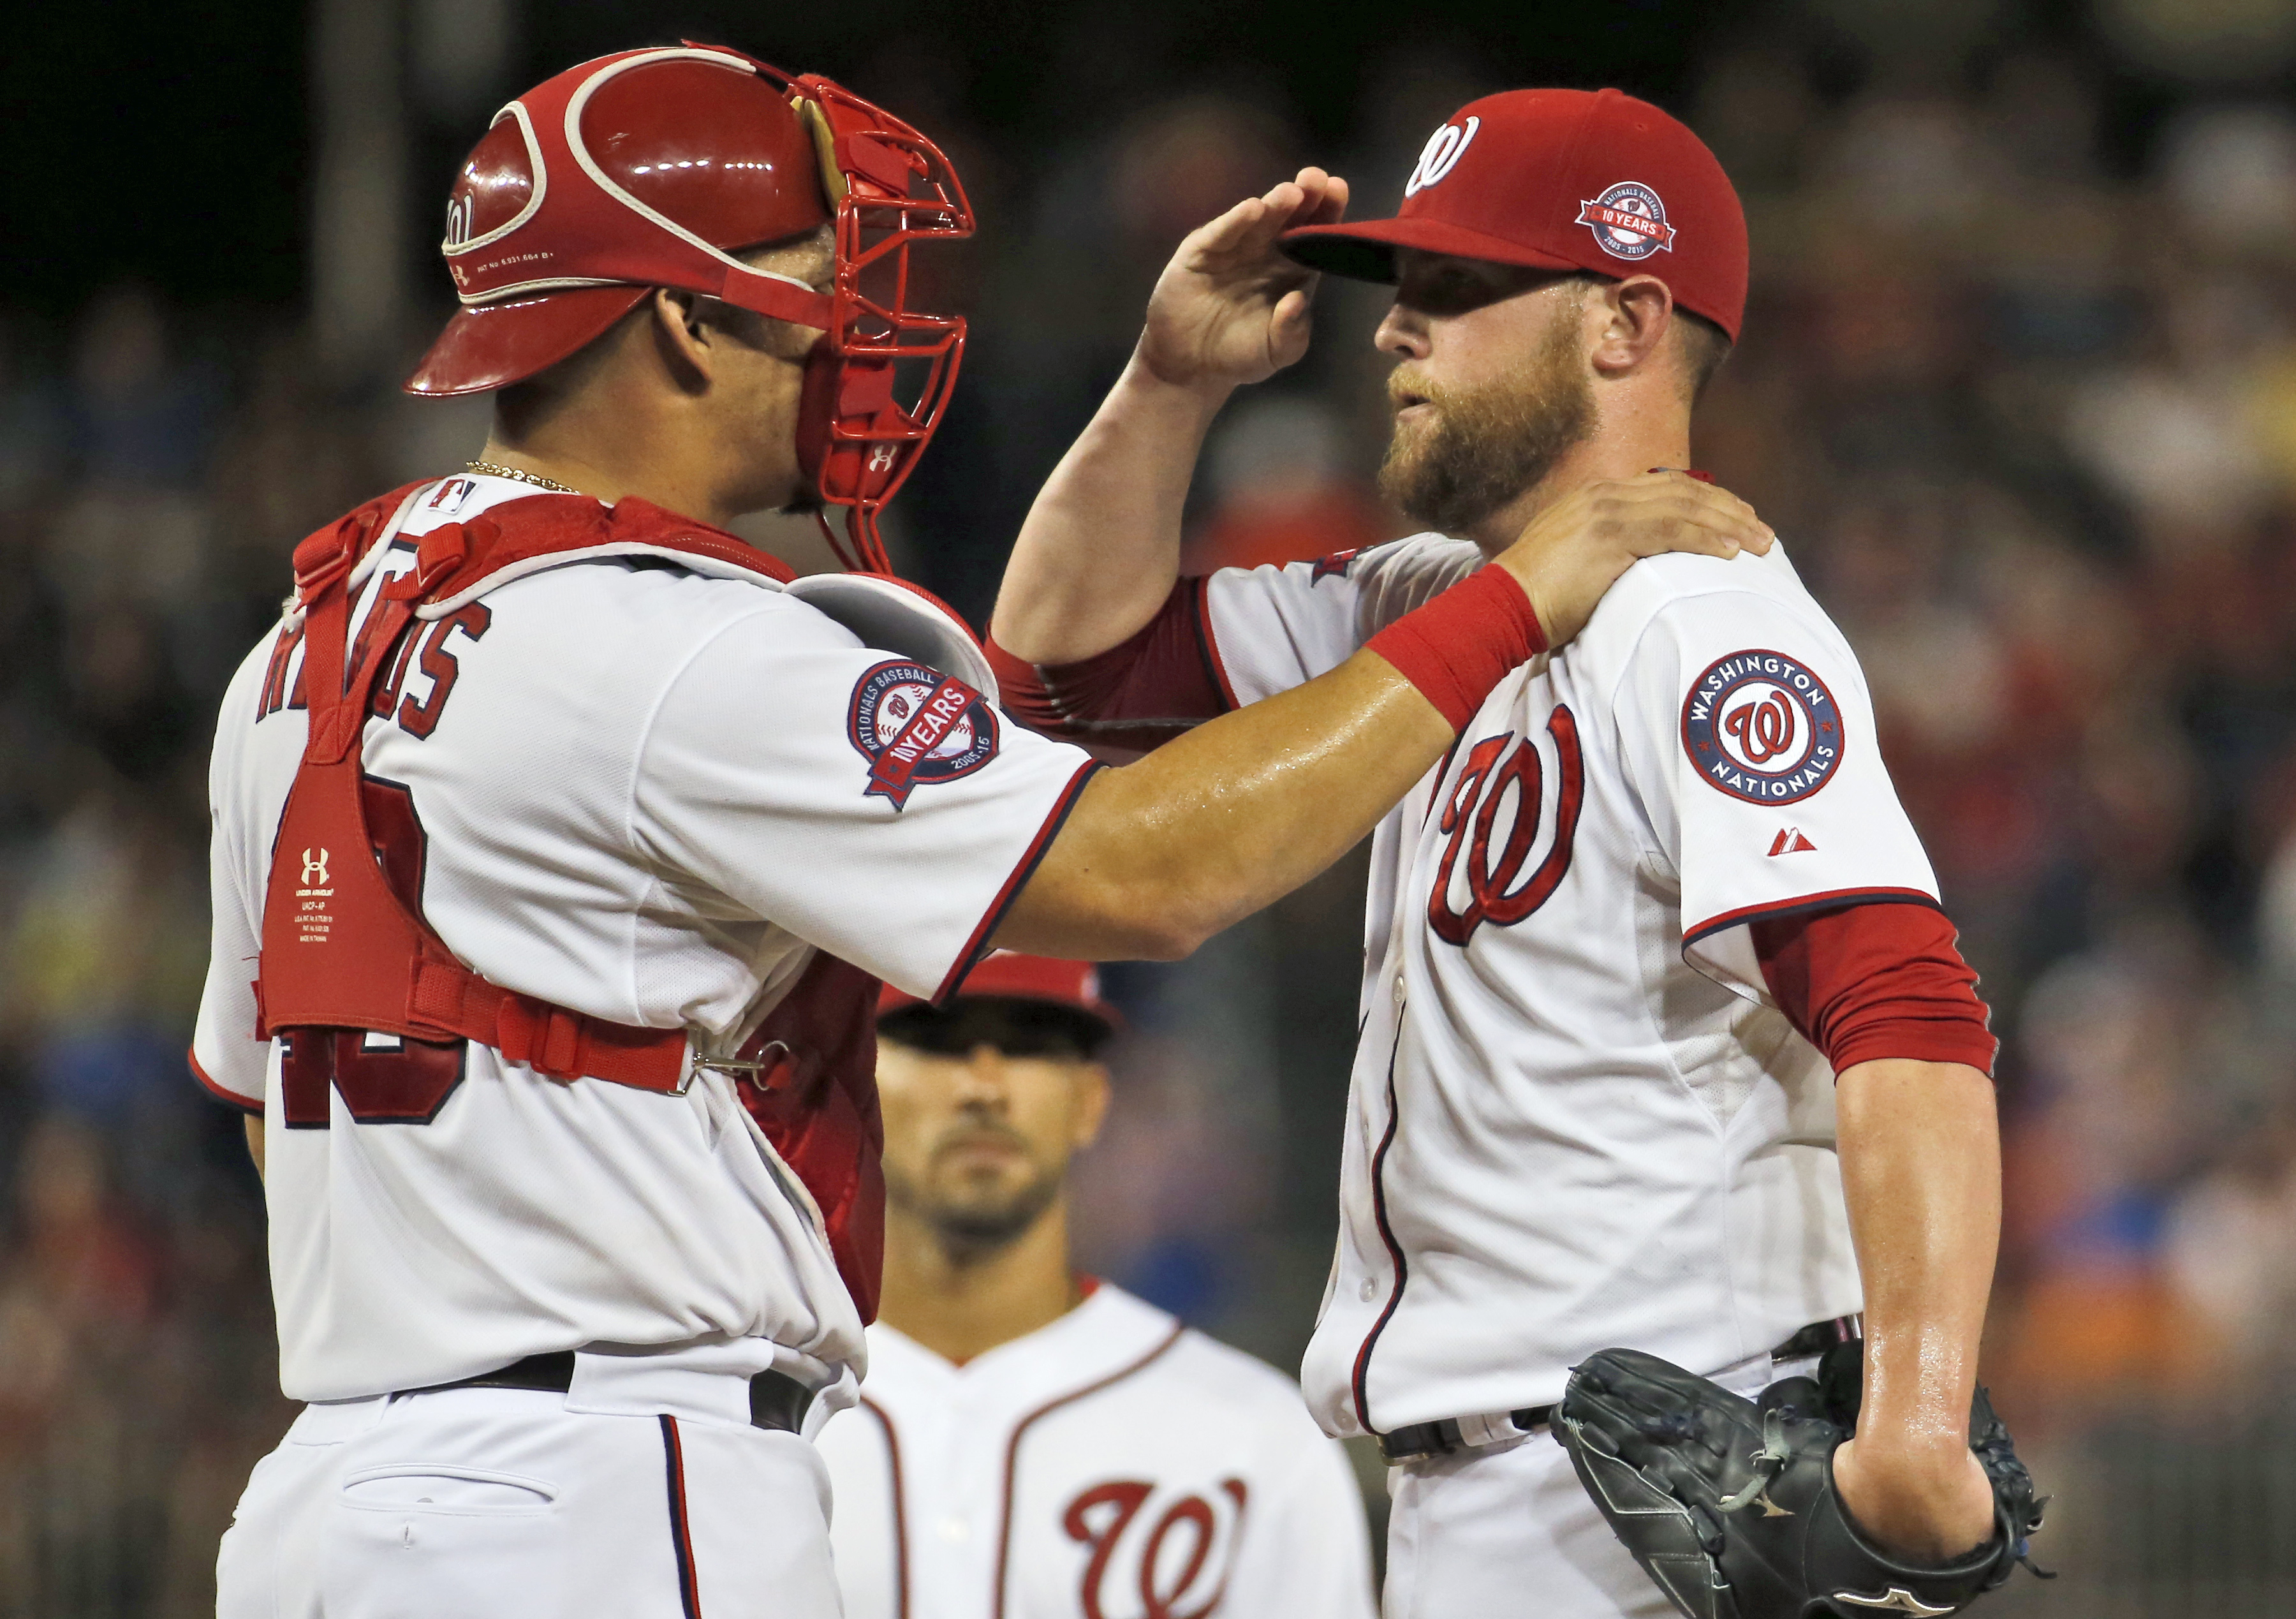 Washington Nationals catcher Wilson Ramos (40) talks with relief pitcher Drew Storen, right, with shortstop Ian Desmond behind, after Storen walked in a run to tie the baseball game against the New York Mets during the seventh inning at Nationals Park, Tu